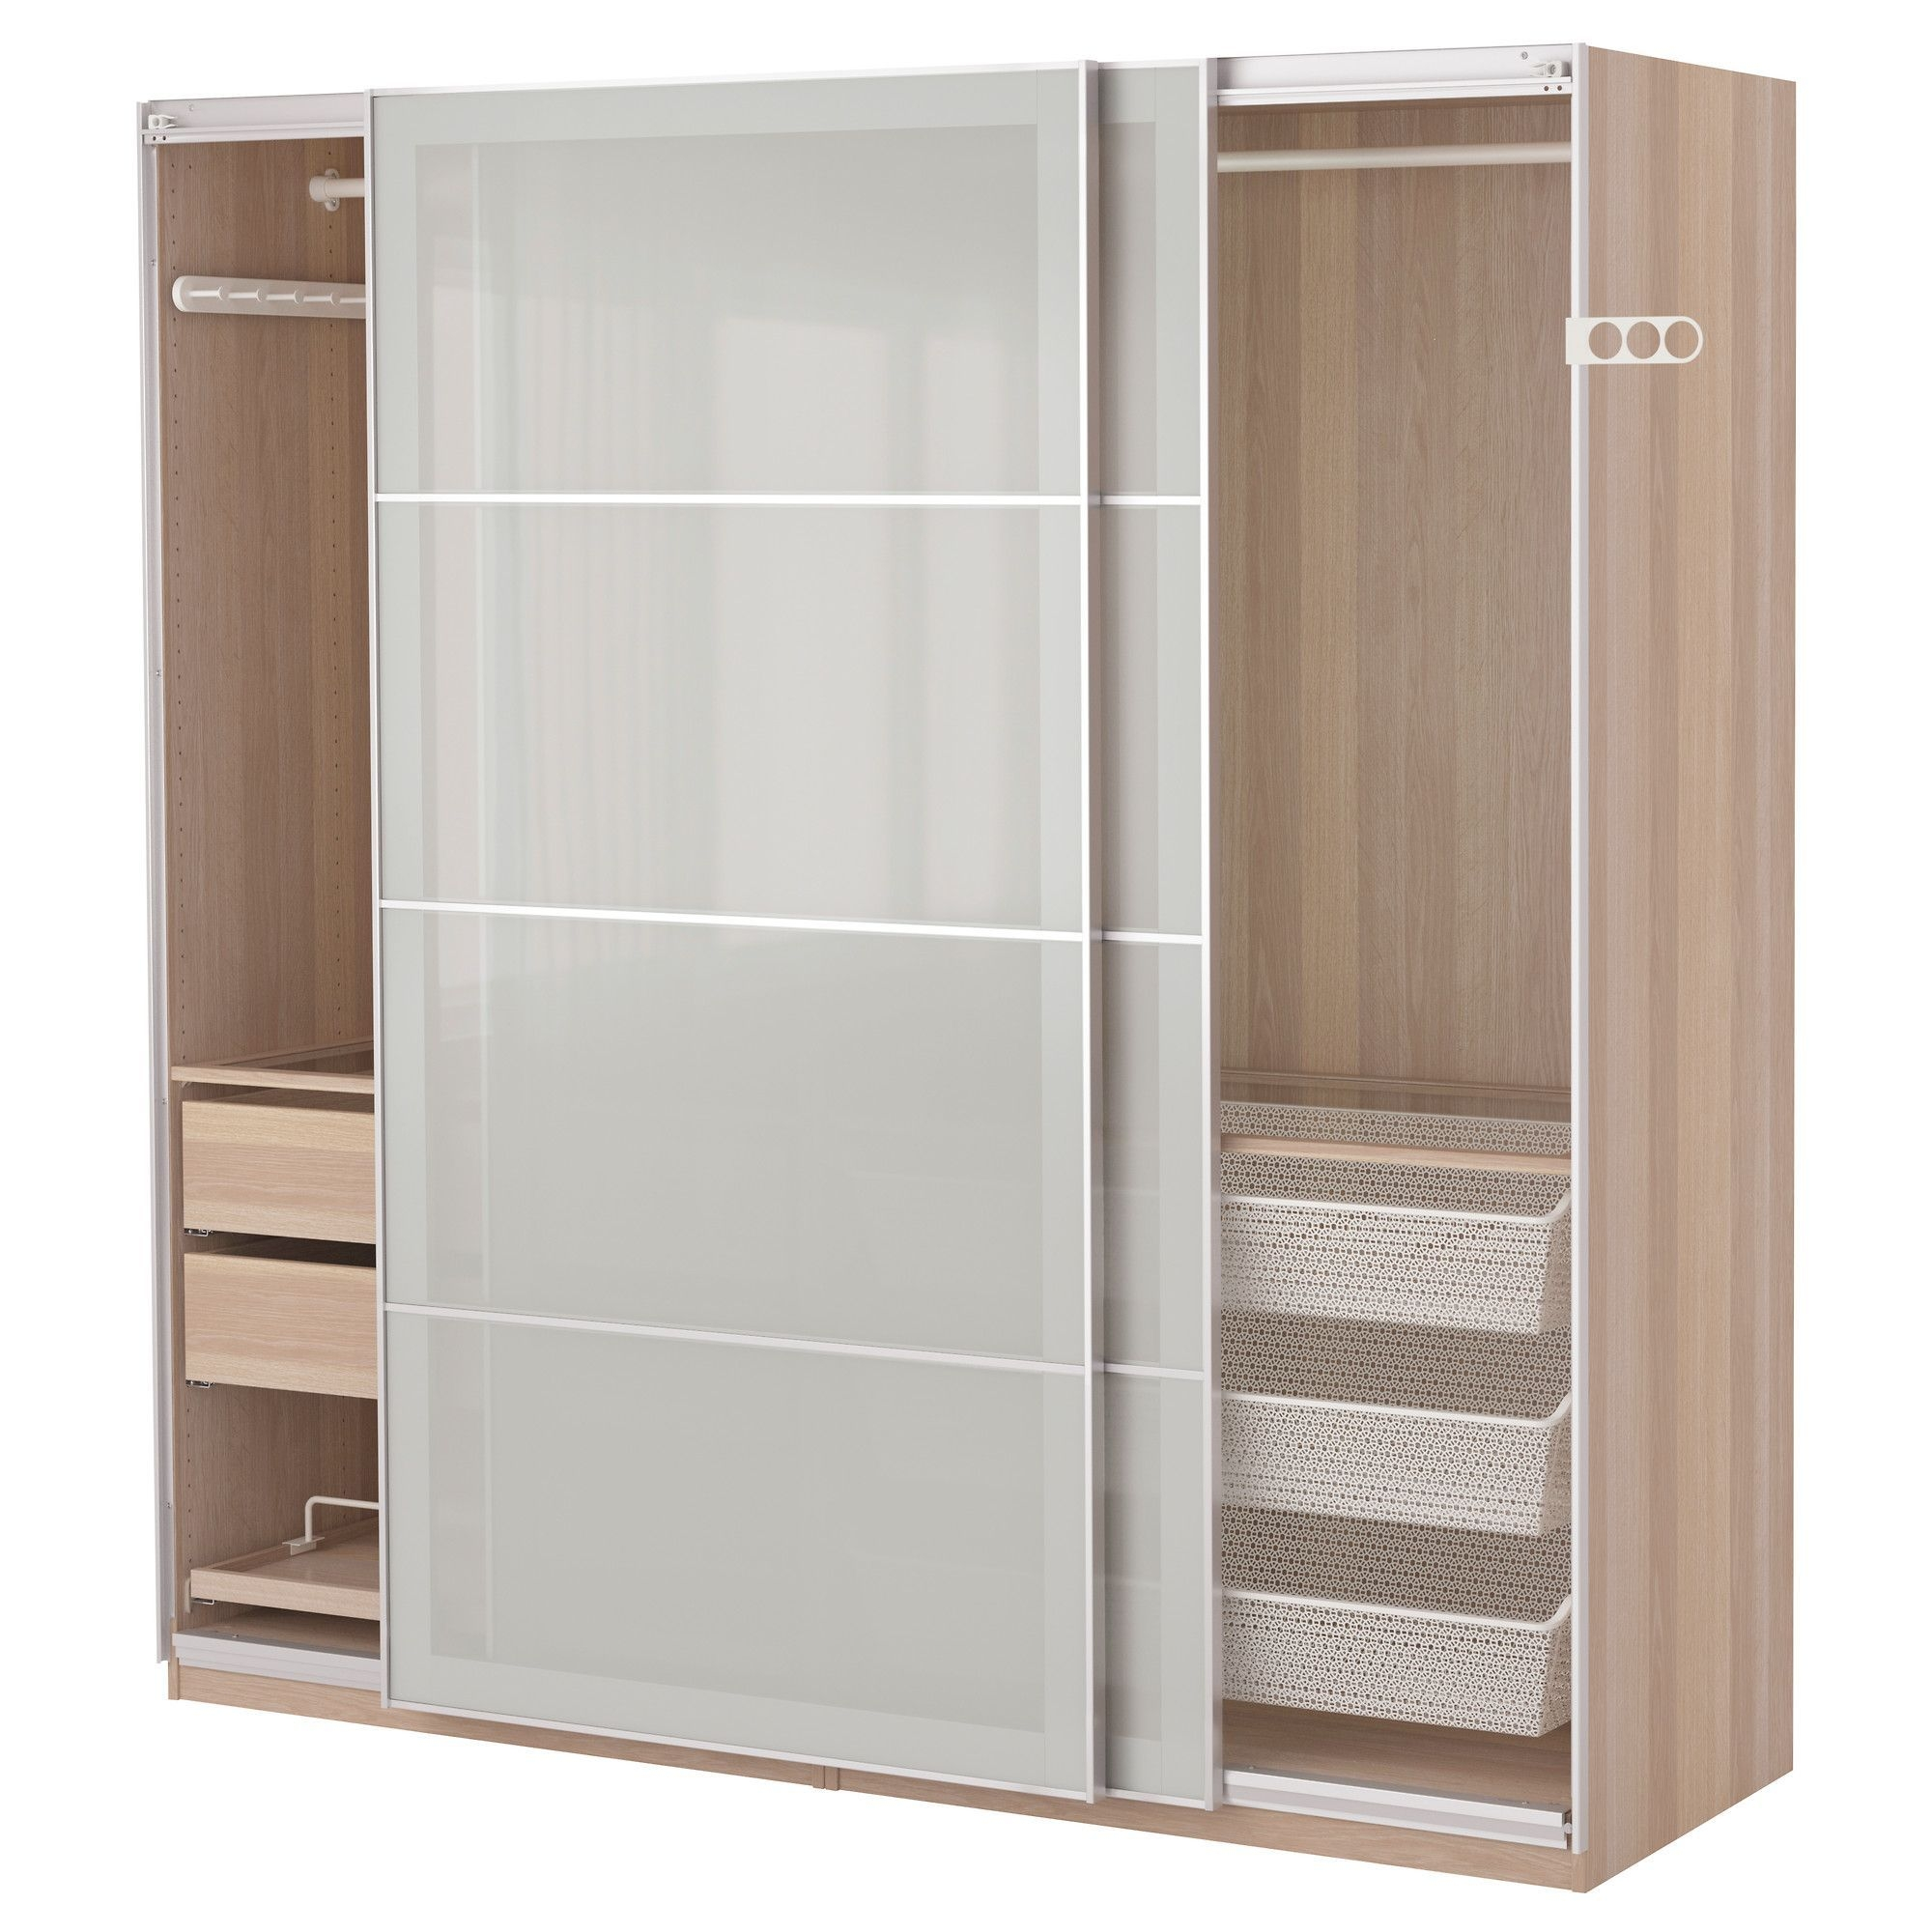 Ireland Shop For Furniture  Home Accessories  Ikea Wardrobe Ikea Odda Ikea